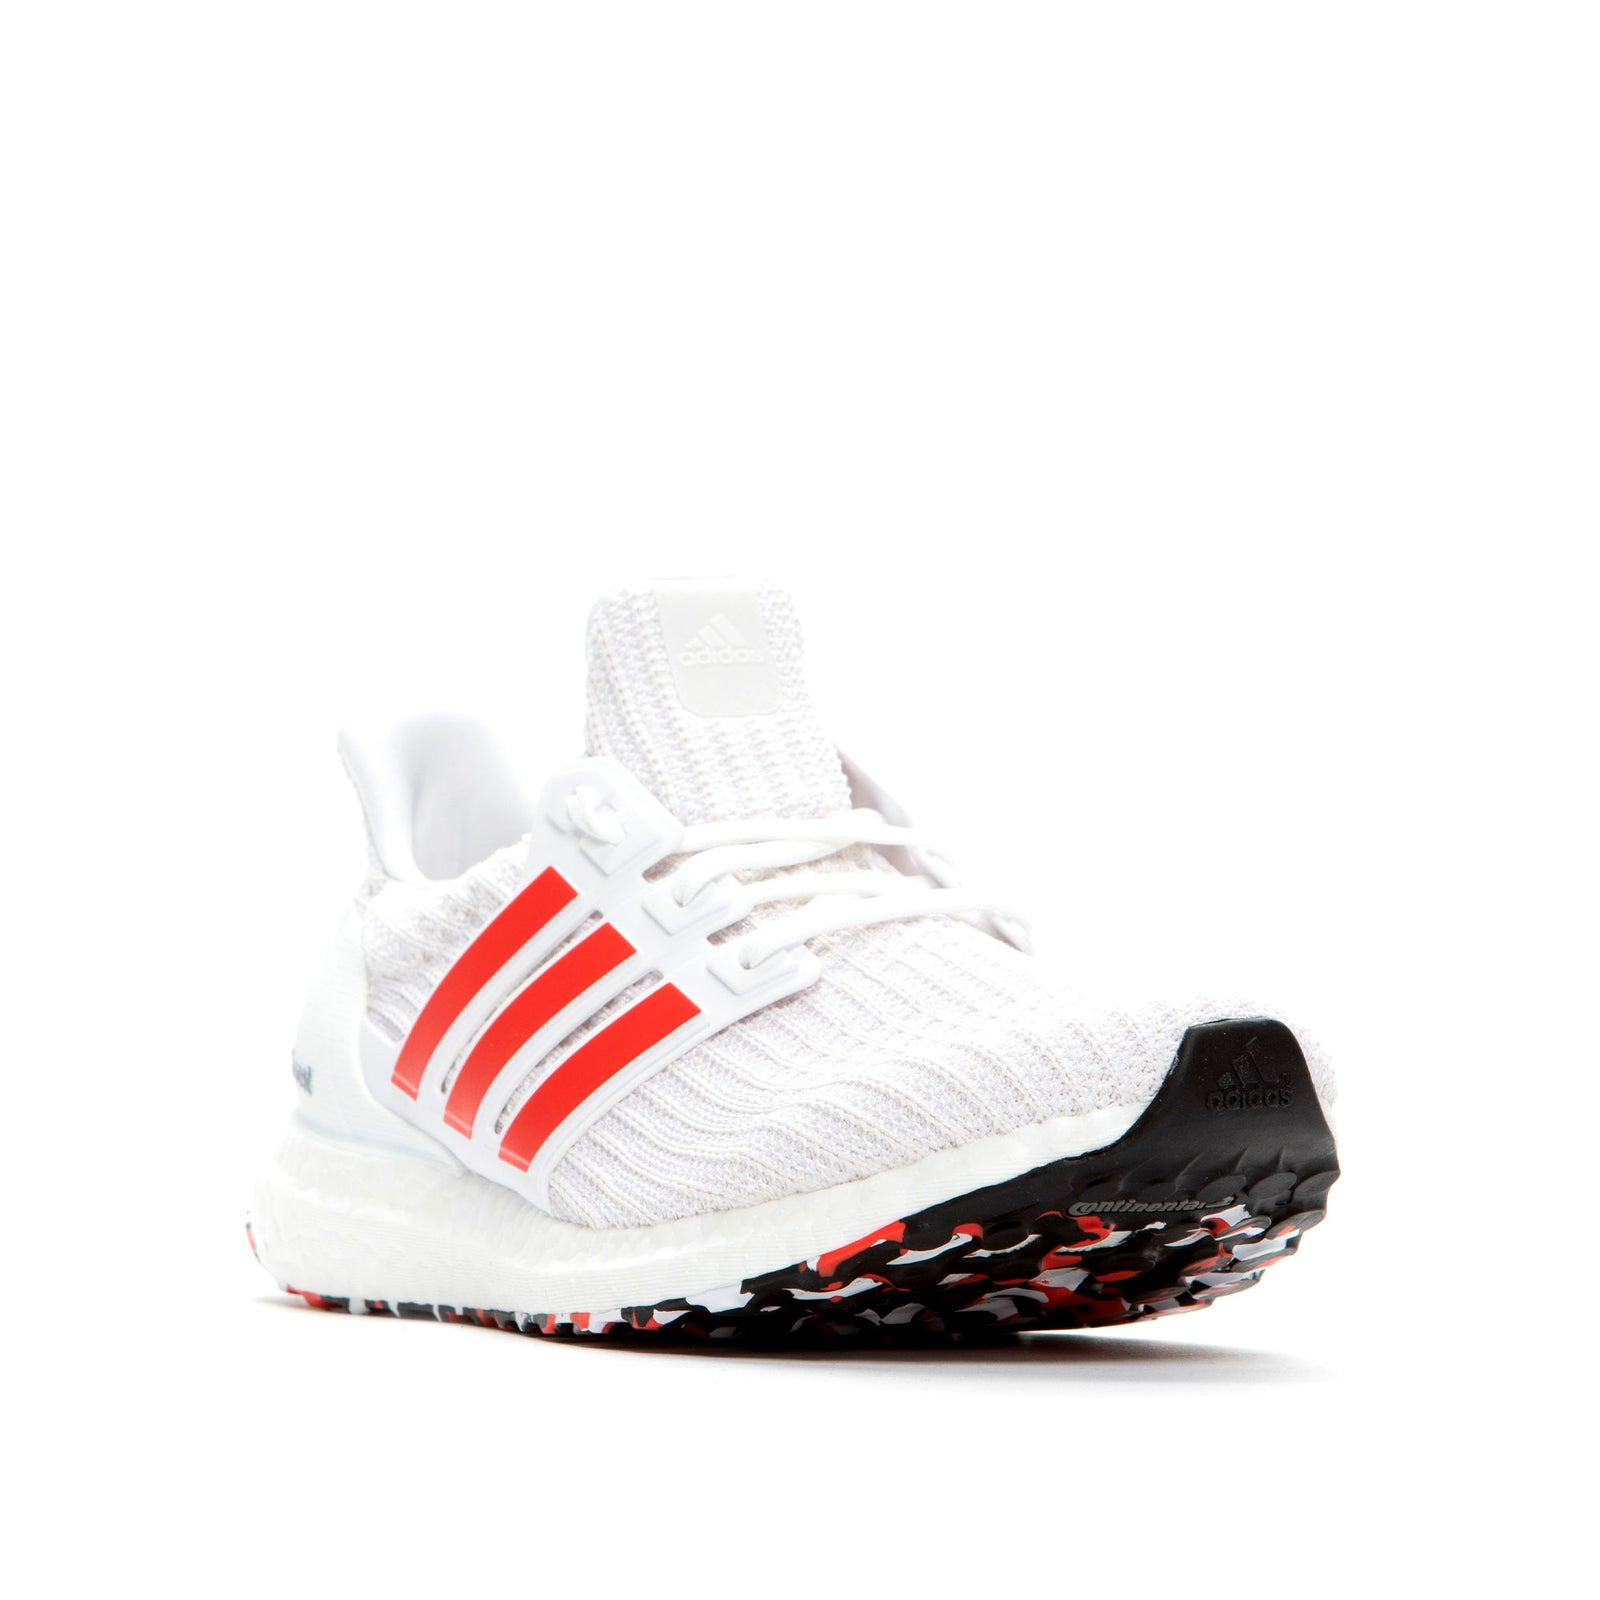 Adidas UltraBoost Men's Running Shoes